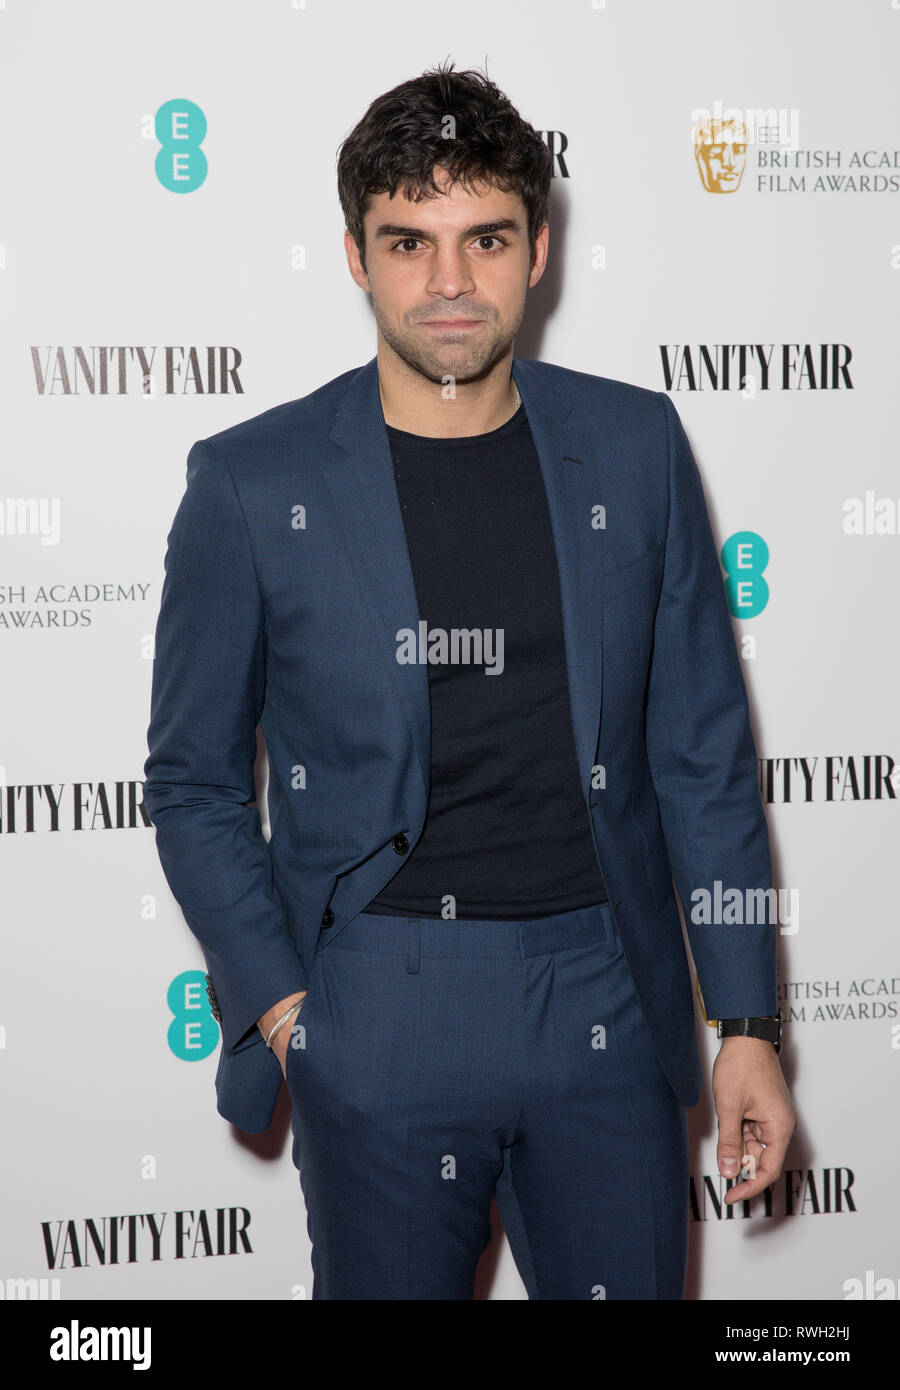 Vanity Fair EE Rising Star Party at The Baptist at L'Oscar Hotel in Holborn, London.  Featuring: Sean Teale Where: London, United Kingdom When: 31 Jan 2019 Credit: Phil Lewis/WENN.com - Stock Image